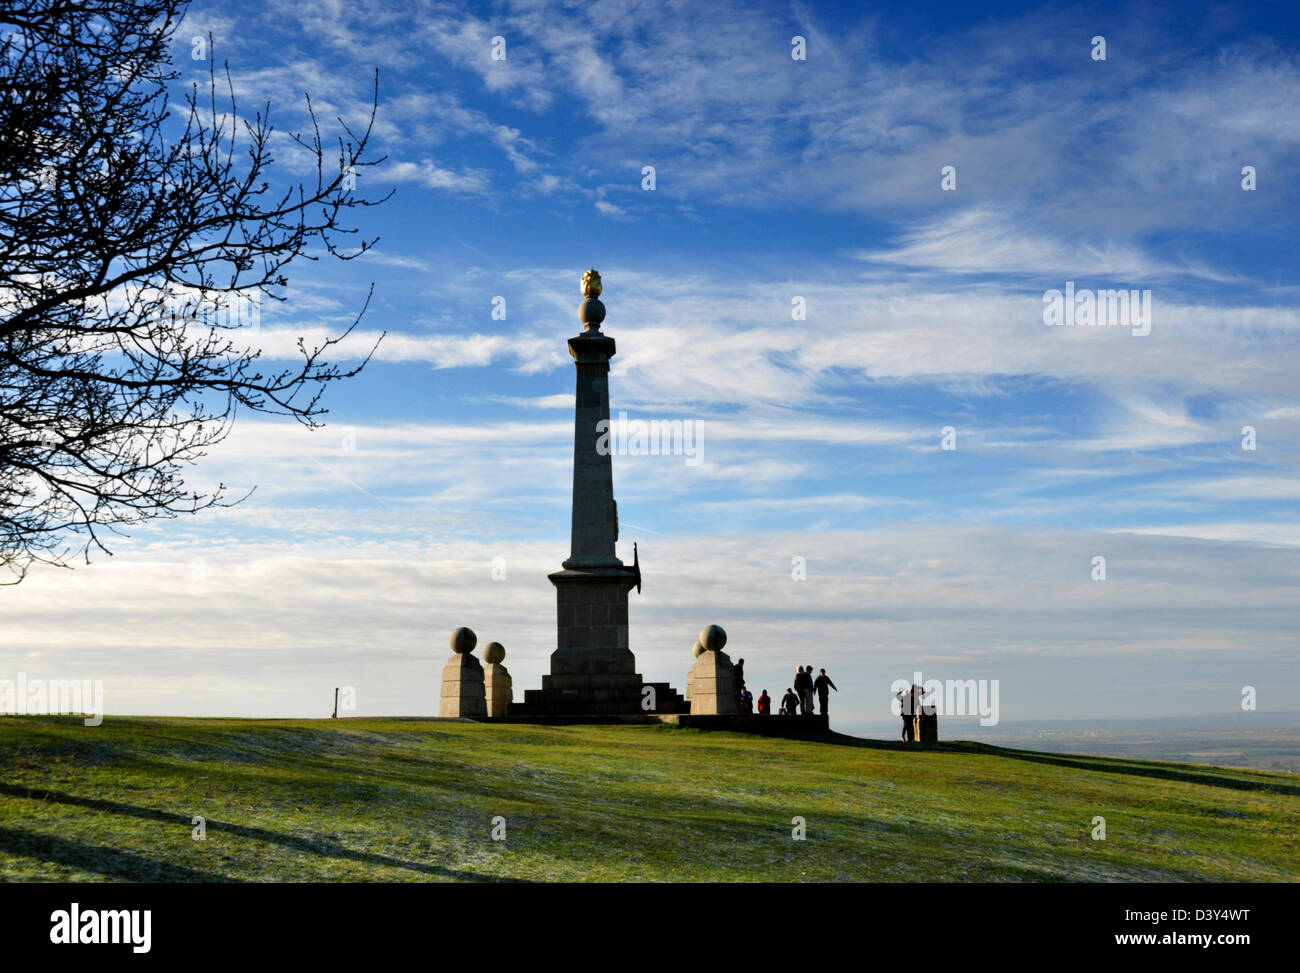 Bucks - Chiltern Hills - monument on Coombe Hill - viewpoint over Aylesbury Plain - walkers - bright winter sunshine - Stock Image